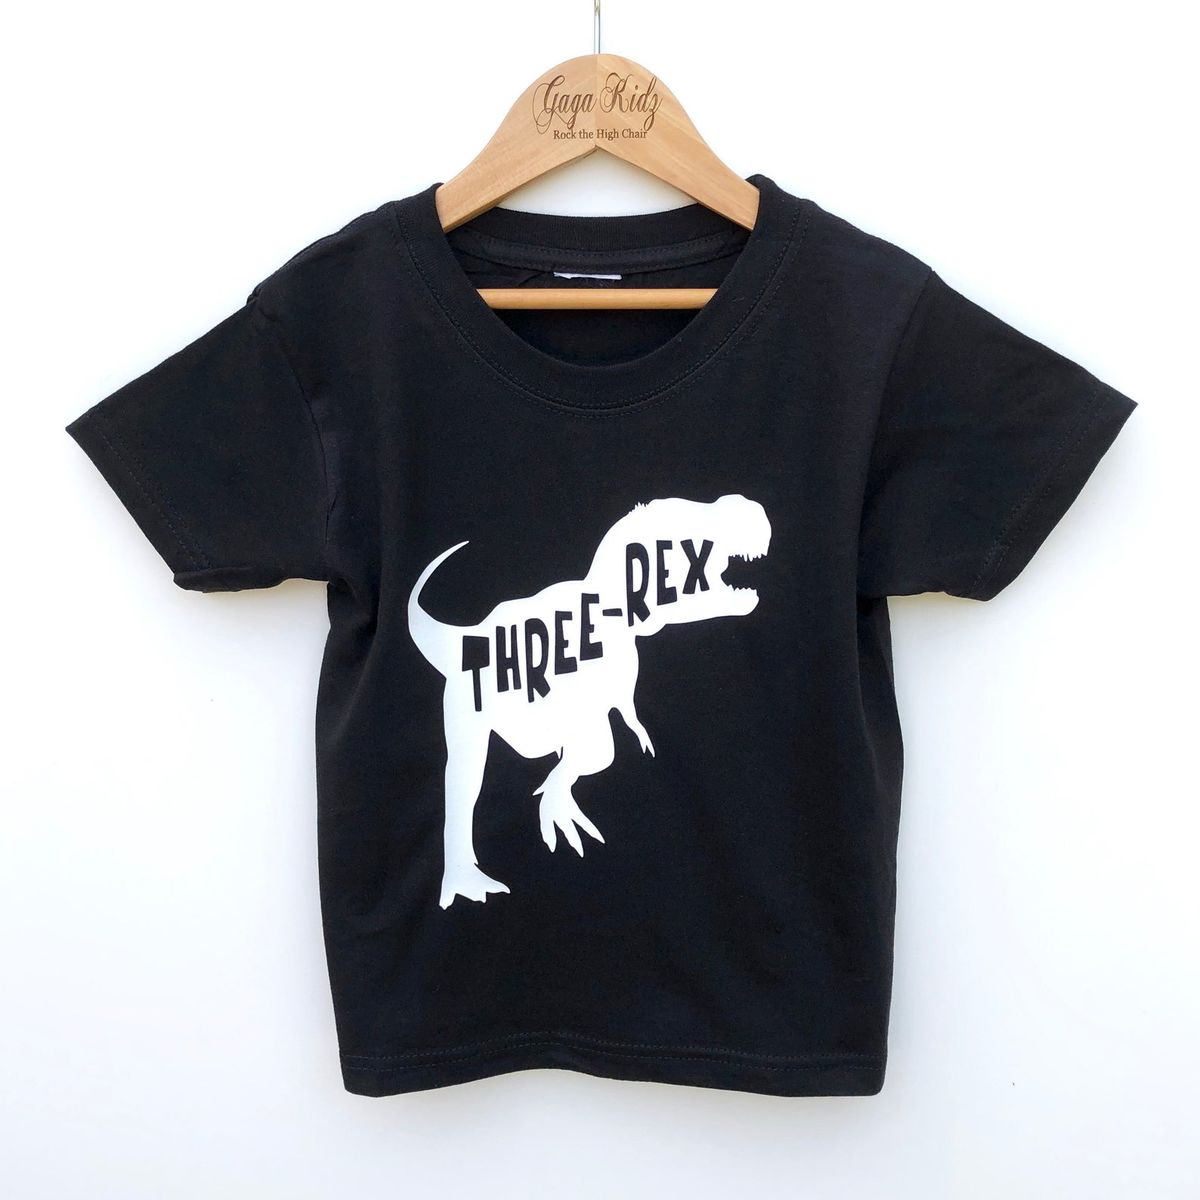 Three-Rex Black or White T-Shirt - product images  of